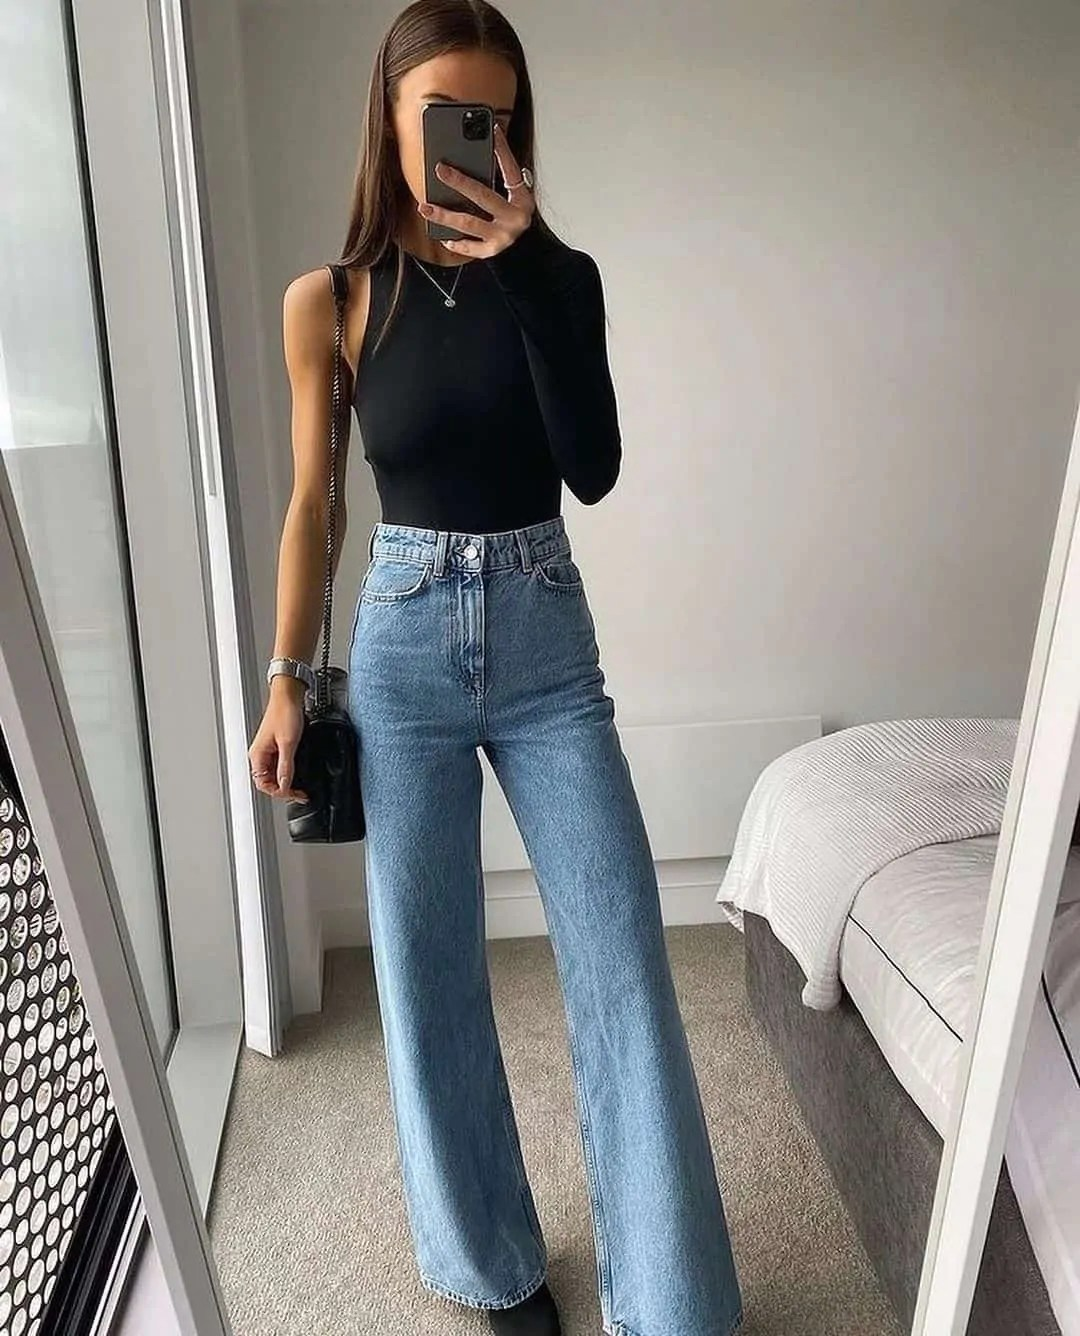 100+ fashion inspo outfits that you have to see no matter what your style is 31